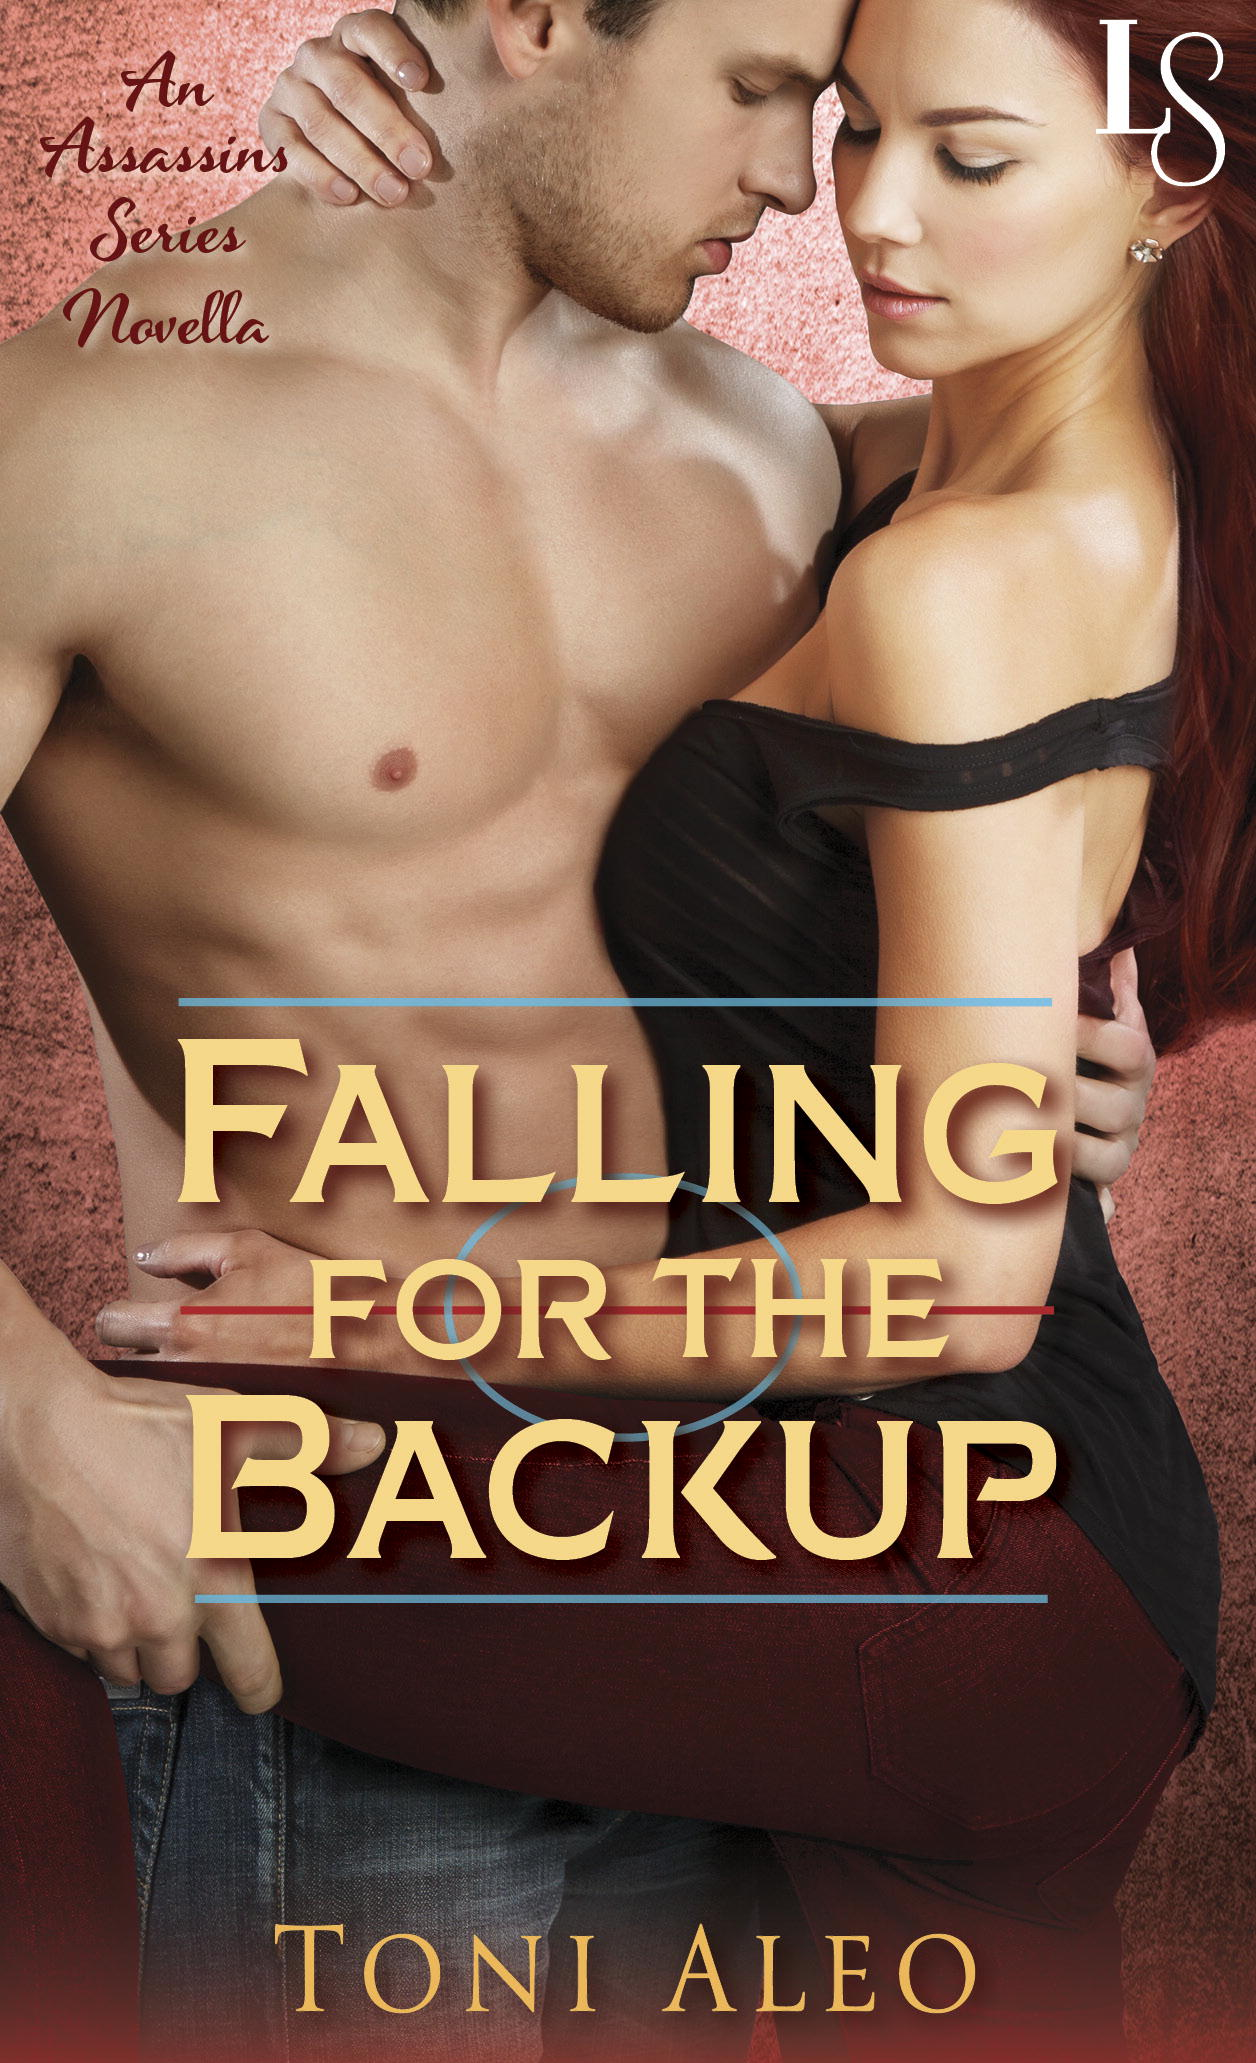 Falling for the Backup - Final